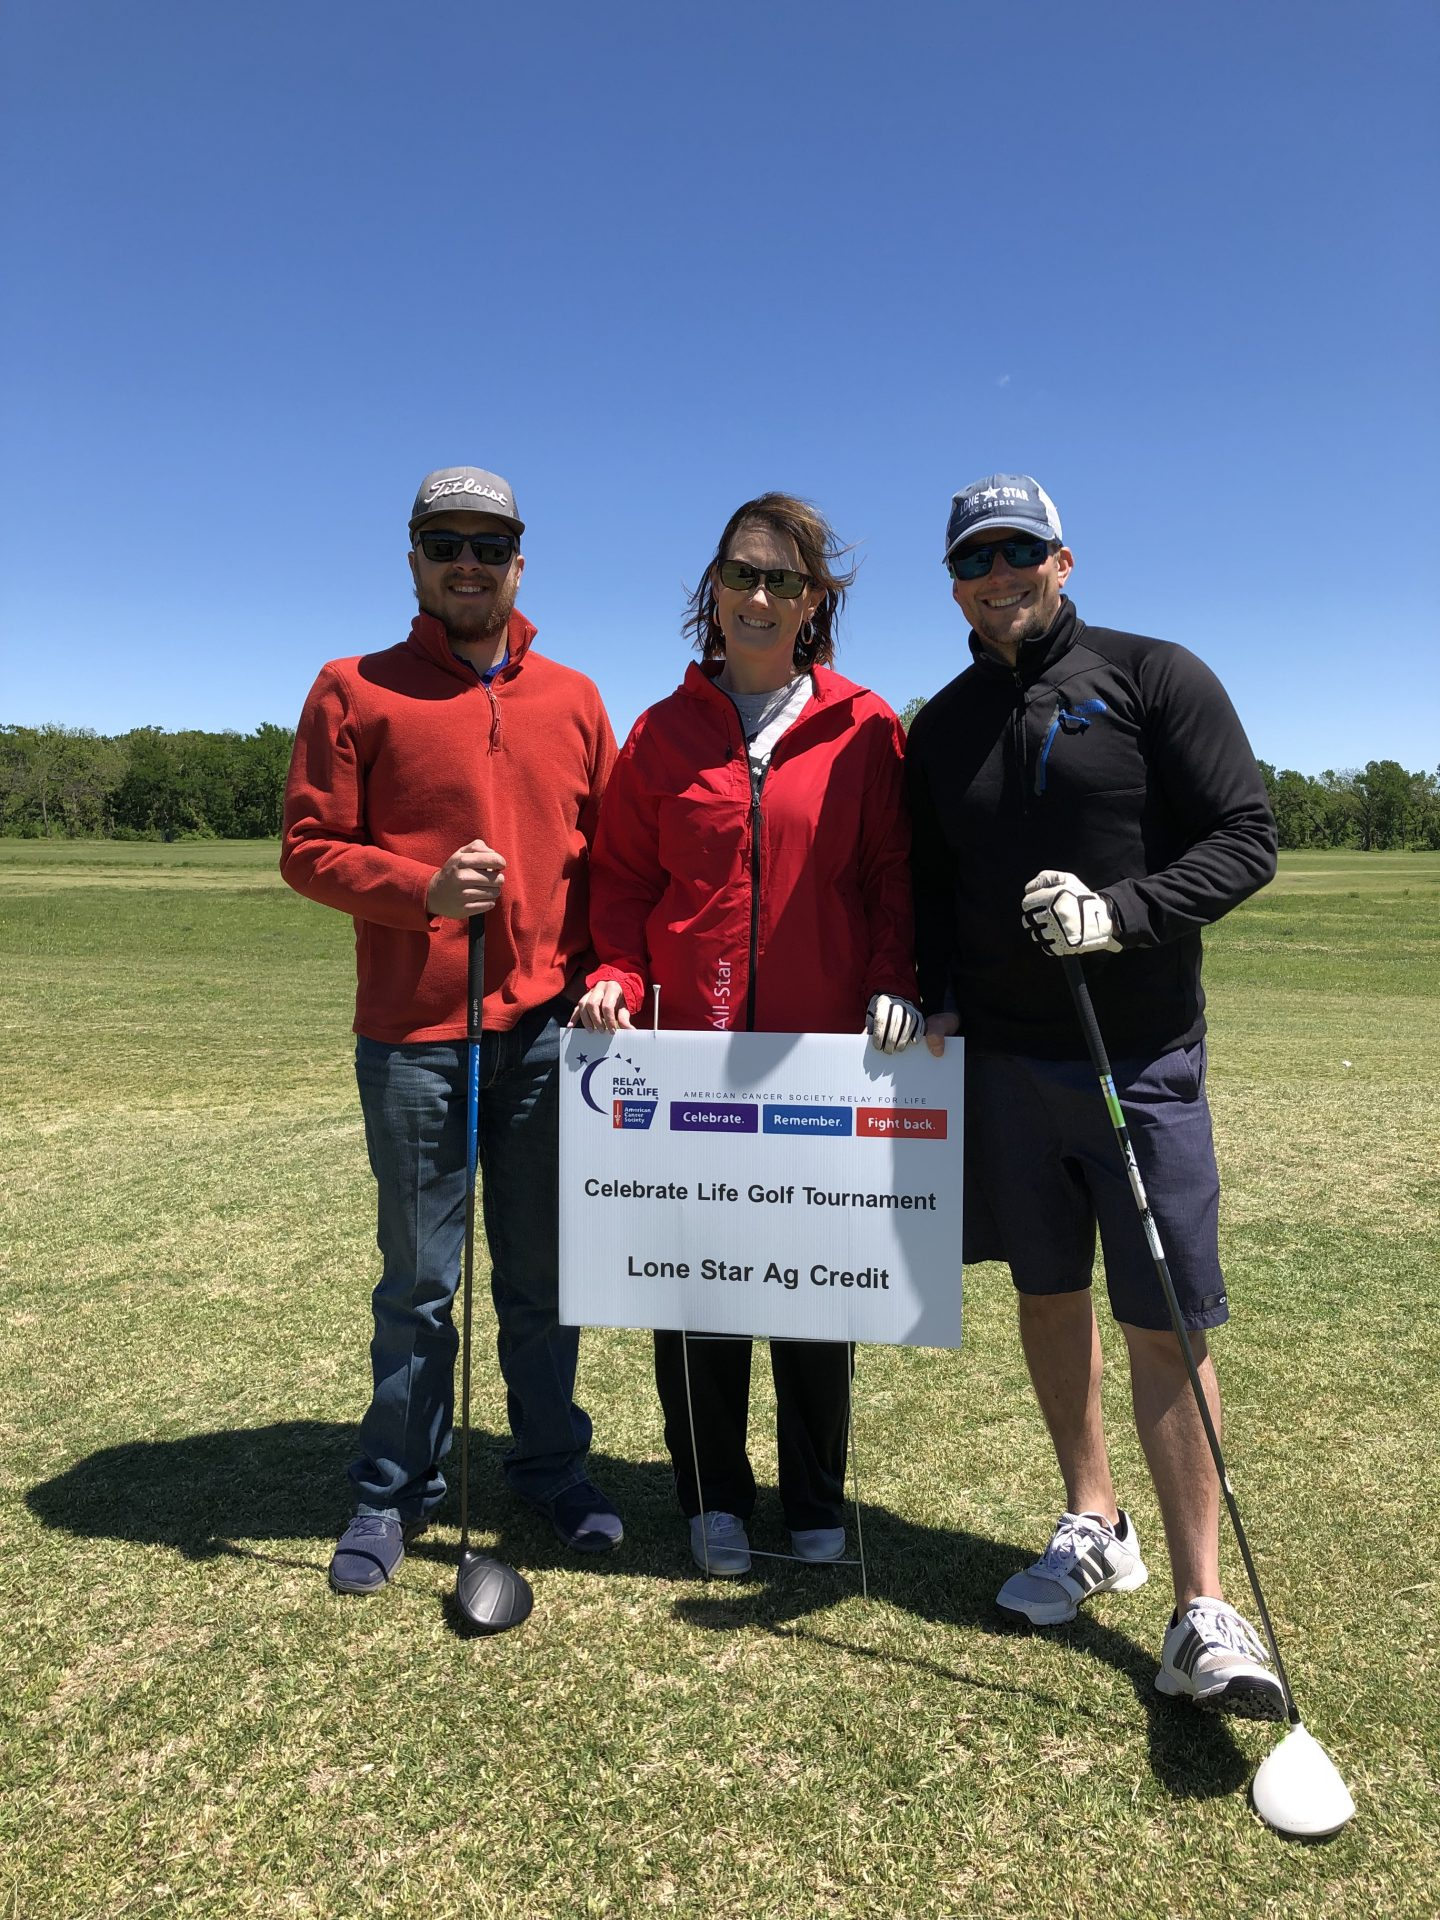 Stephenville staff at golf tournament